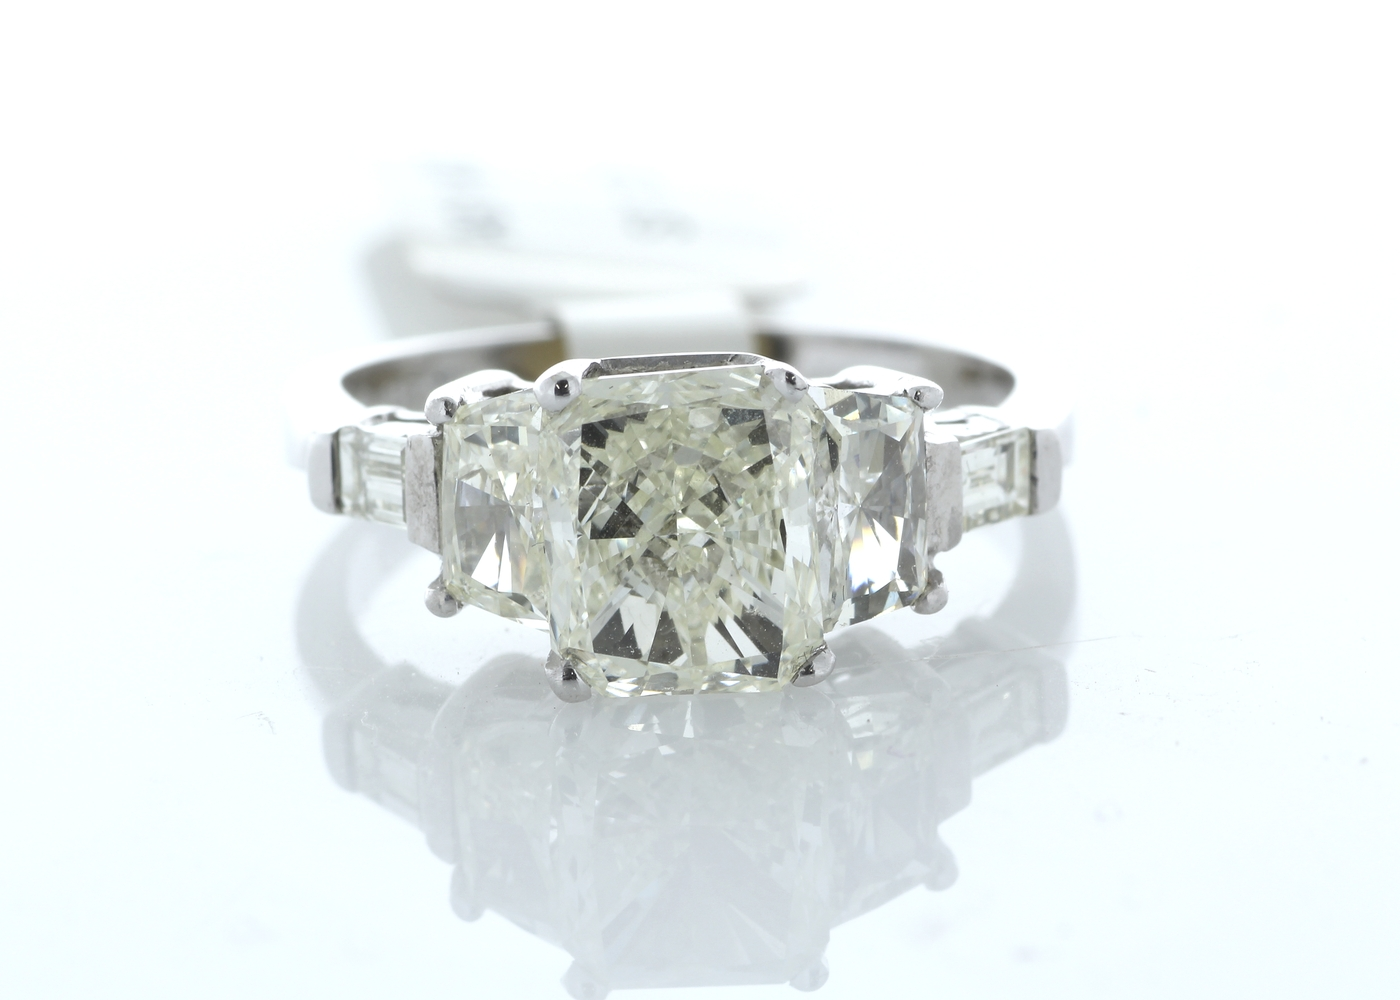 Lot 36 - 18ct White Gold Three Stone Claw Set Diamond Ring 2.92 Carats